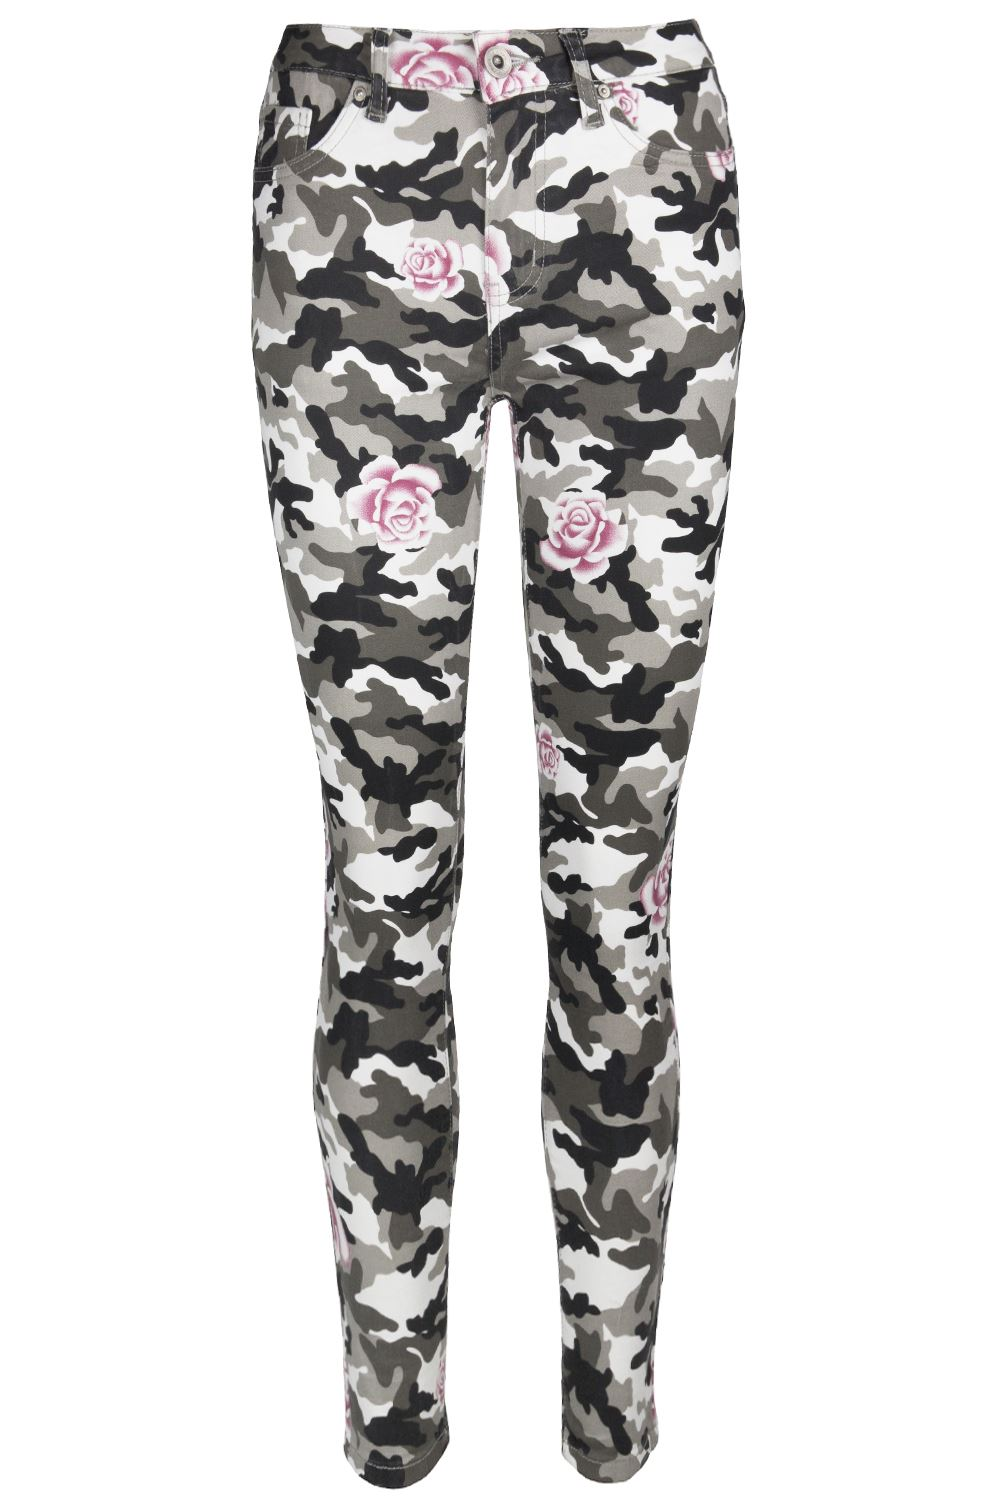 Discover printed pants with ASOS. From floral & geometric, to metallic & patterned with ASOS.